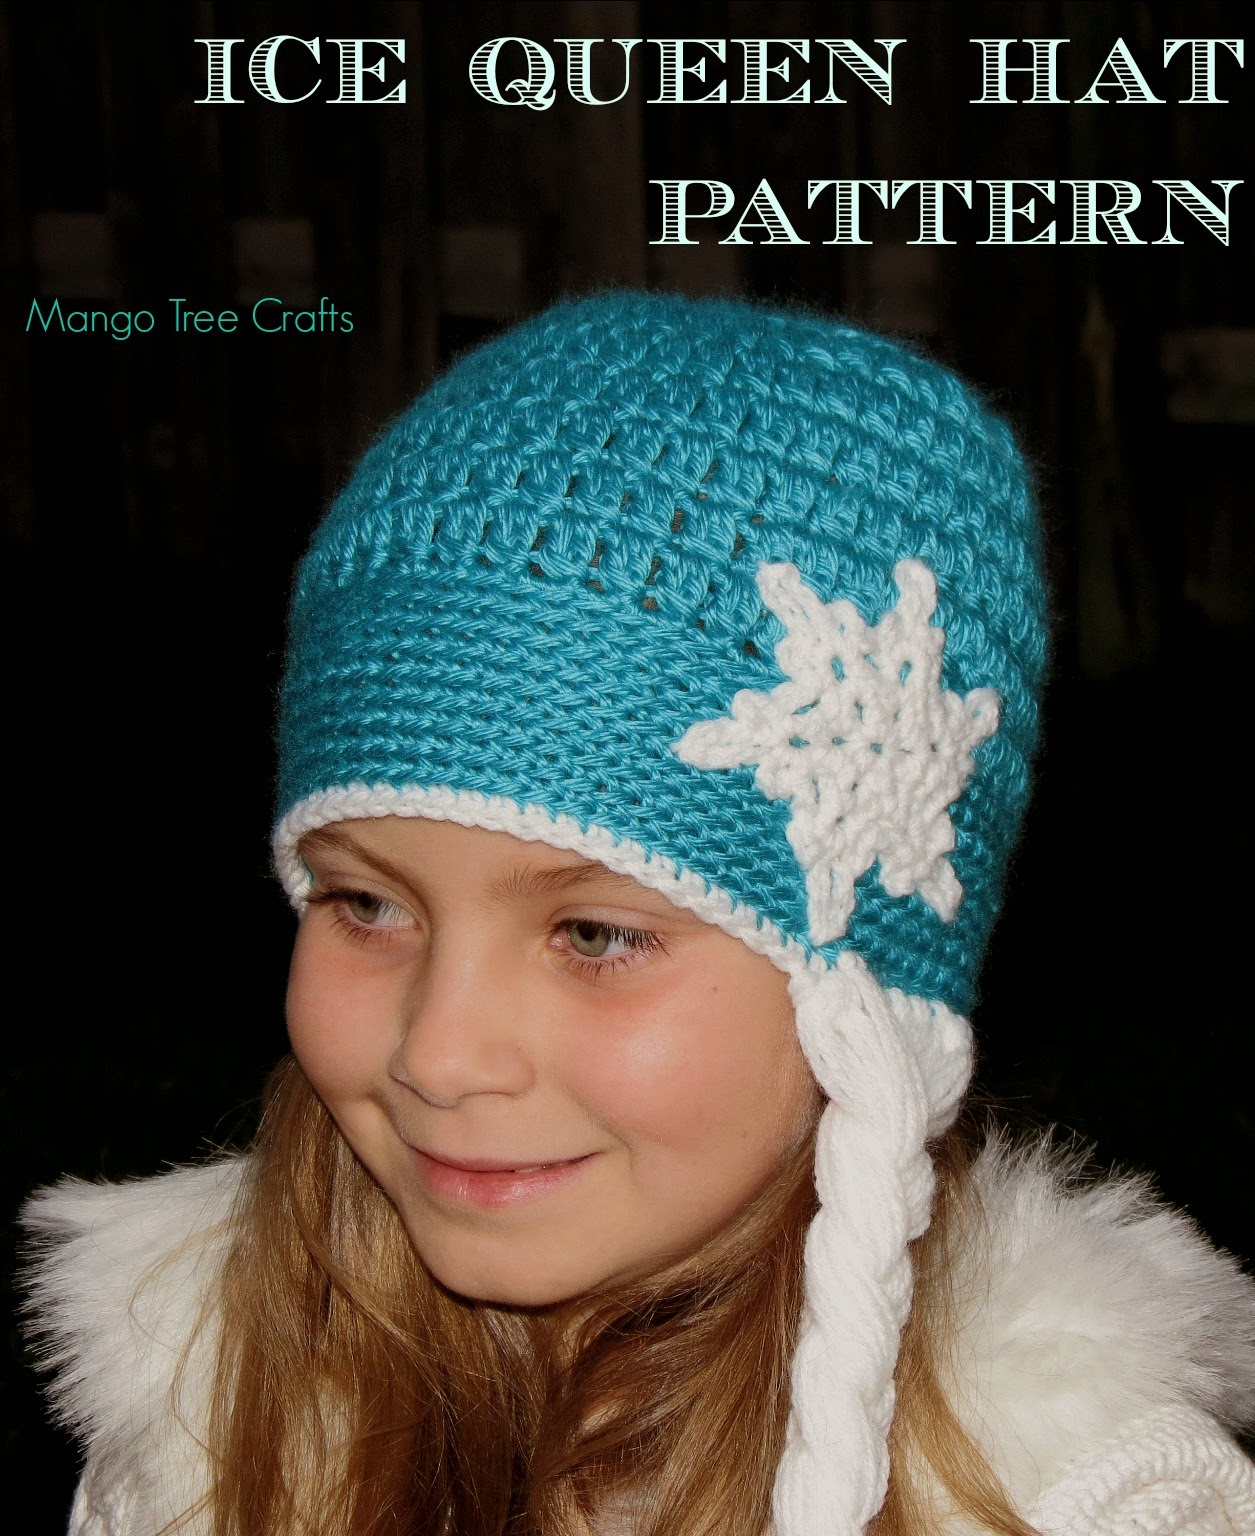 Crochet Elsa Hair Hat : Mango Tree Crafts: Ice Queen Crochet Hat Pattern